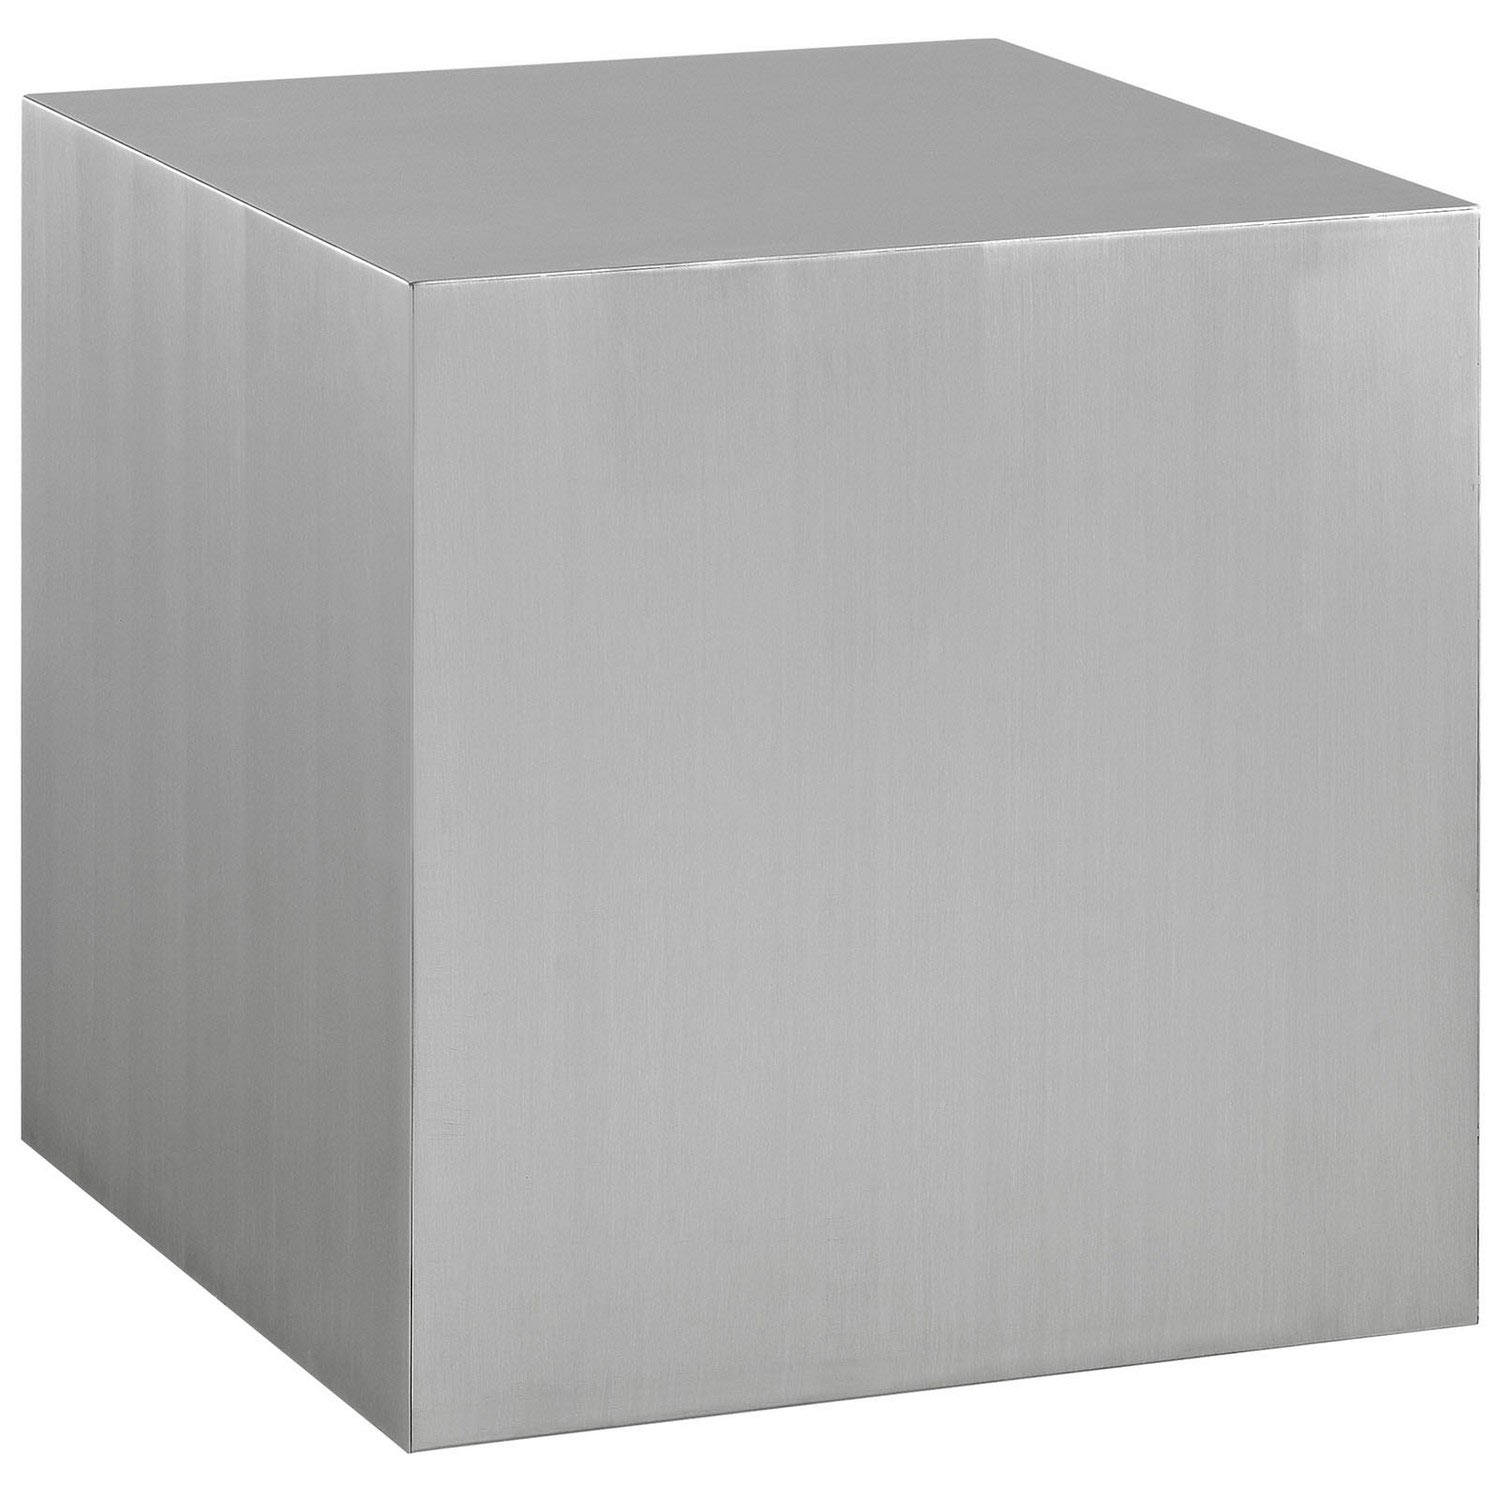 Modway Cast Stainless Steel Side Table - Silver